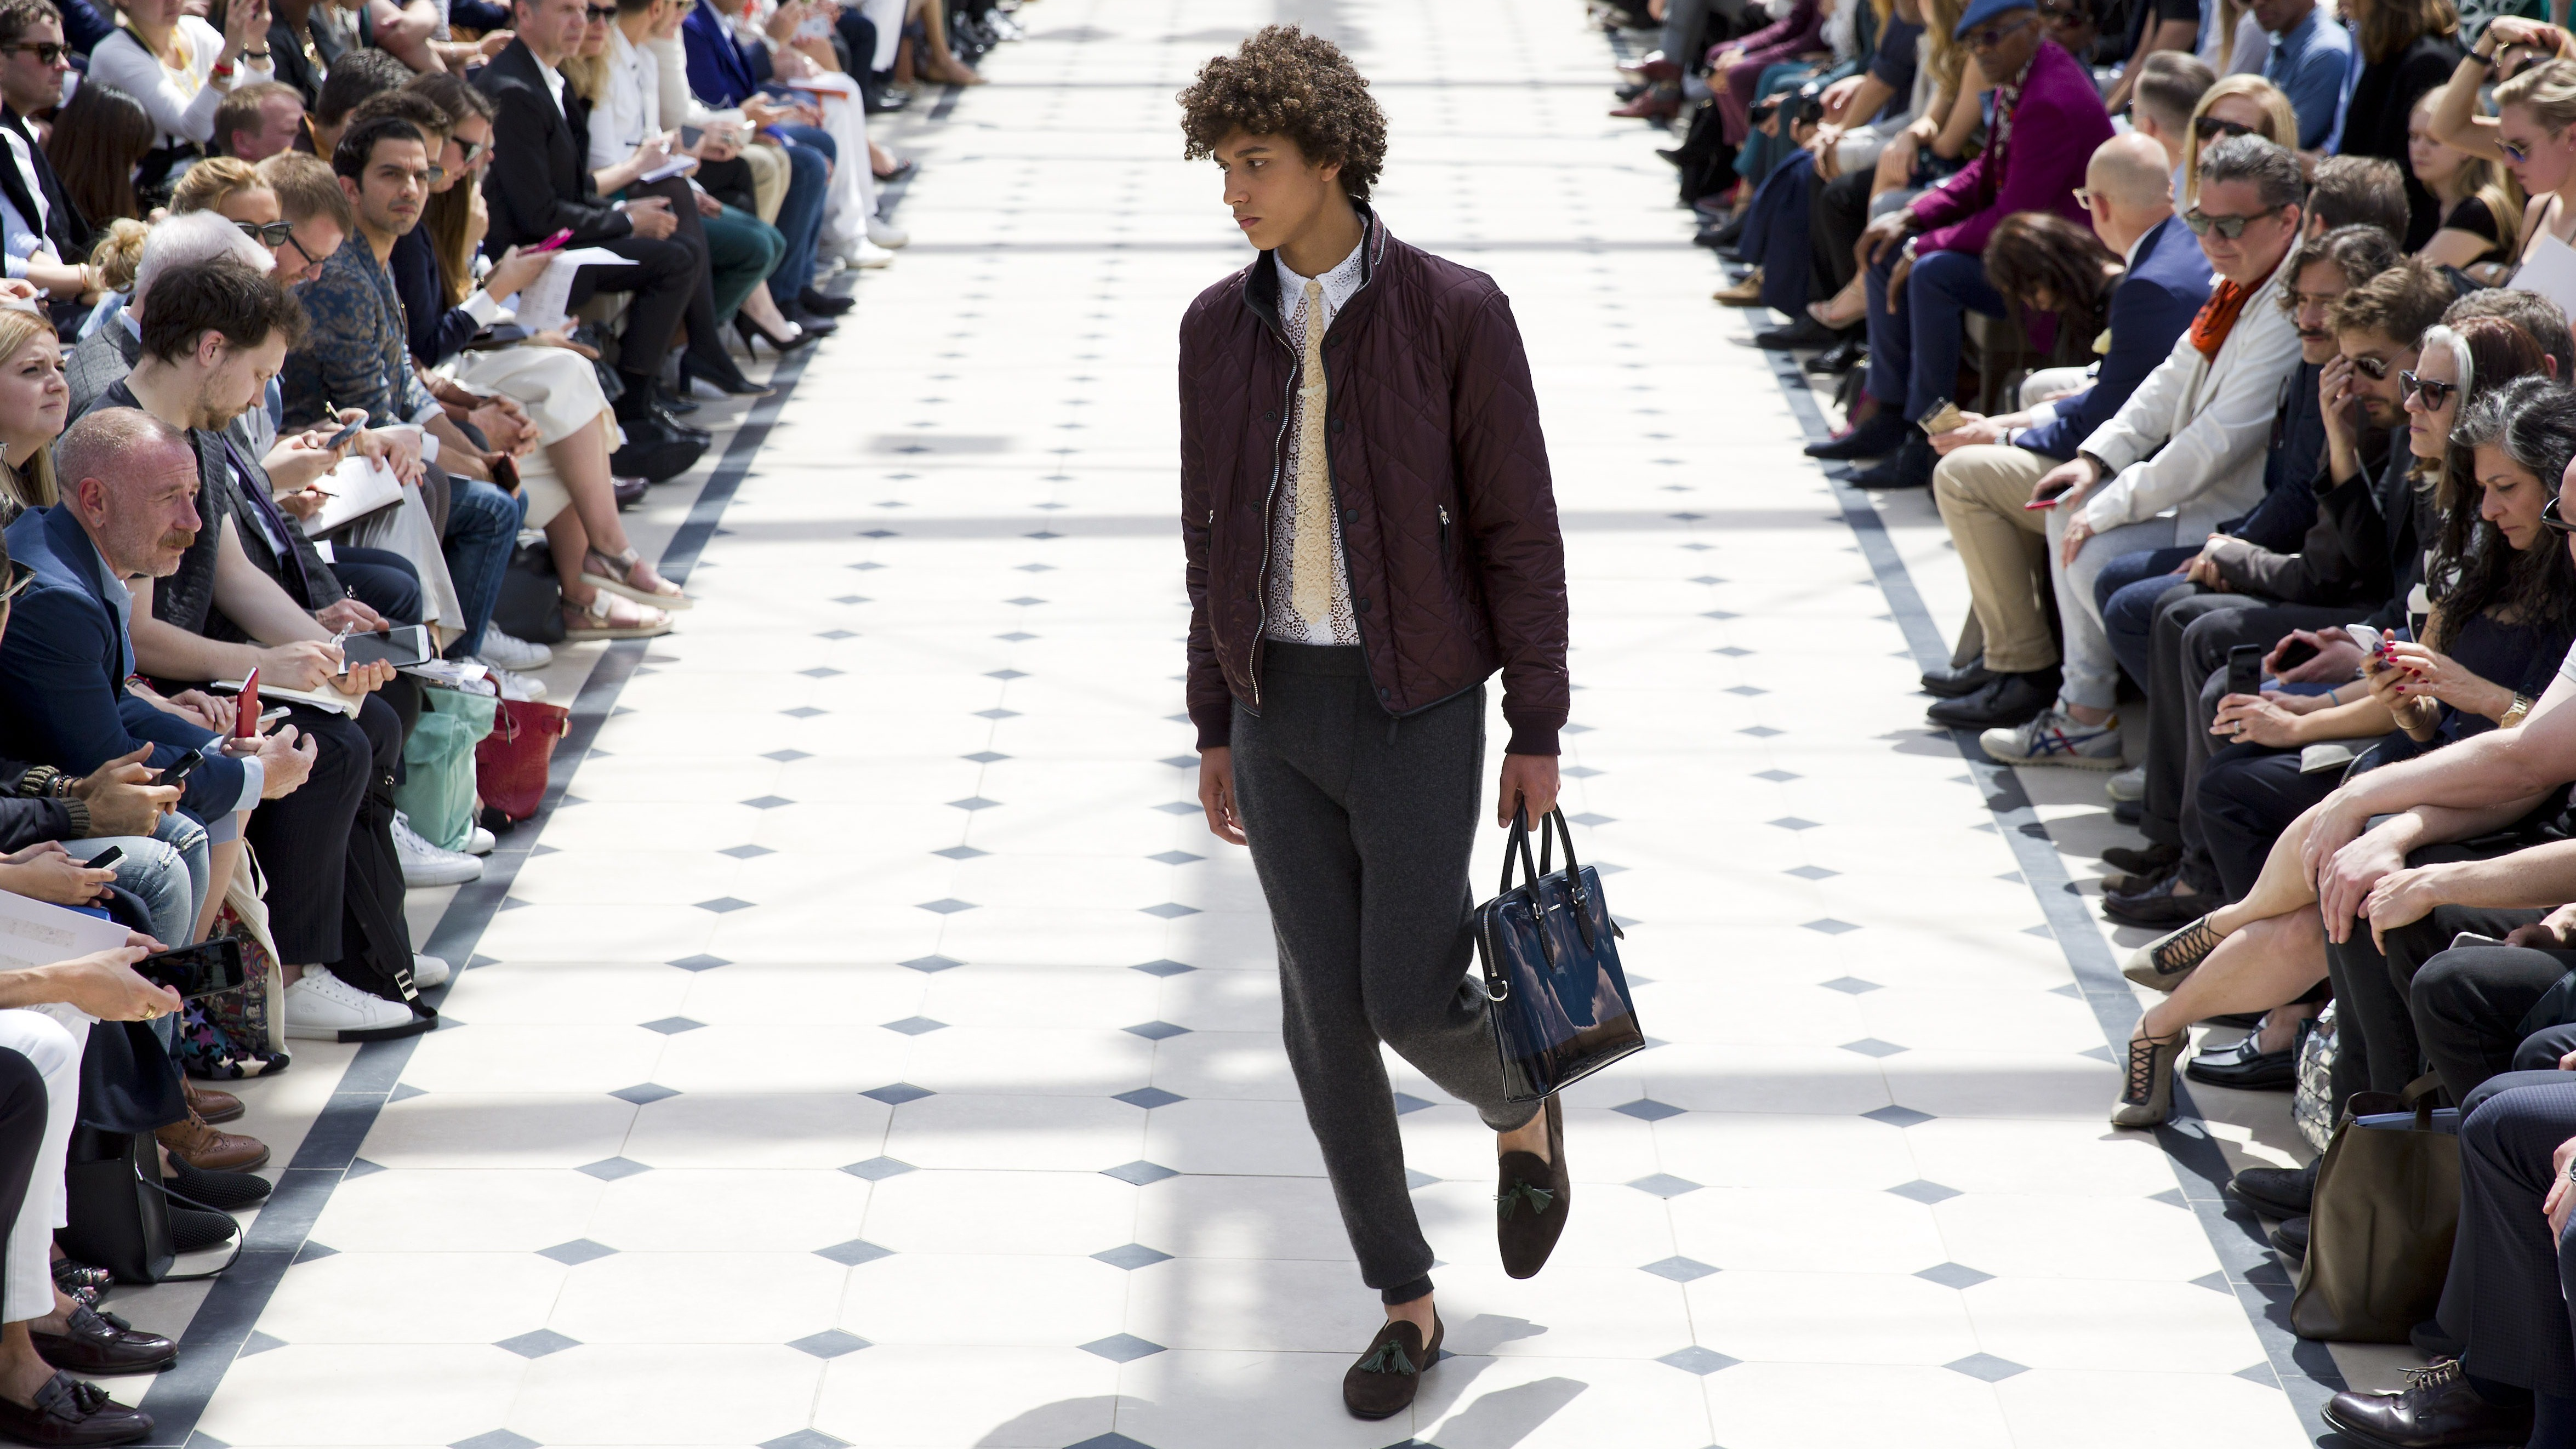 A model presents a creation by British design house Burberry Prorsum during their catwalk show on the fourth day of the Spring/Summer 2016 London Collections Men fashion event in central London, on June 15, 2015. AFP PHOTO / JUSTIN TALLIS (Photo credit should read JUSTIN TALLIS/AFP/Getty Images)